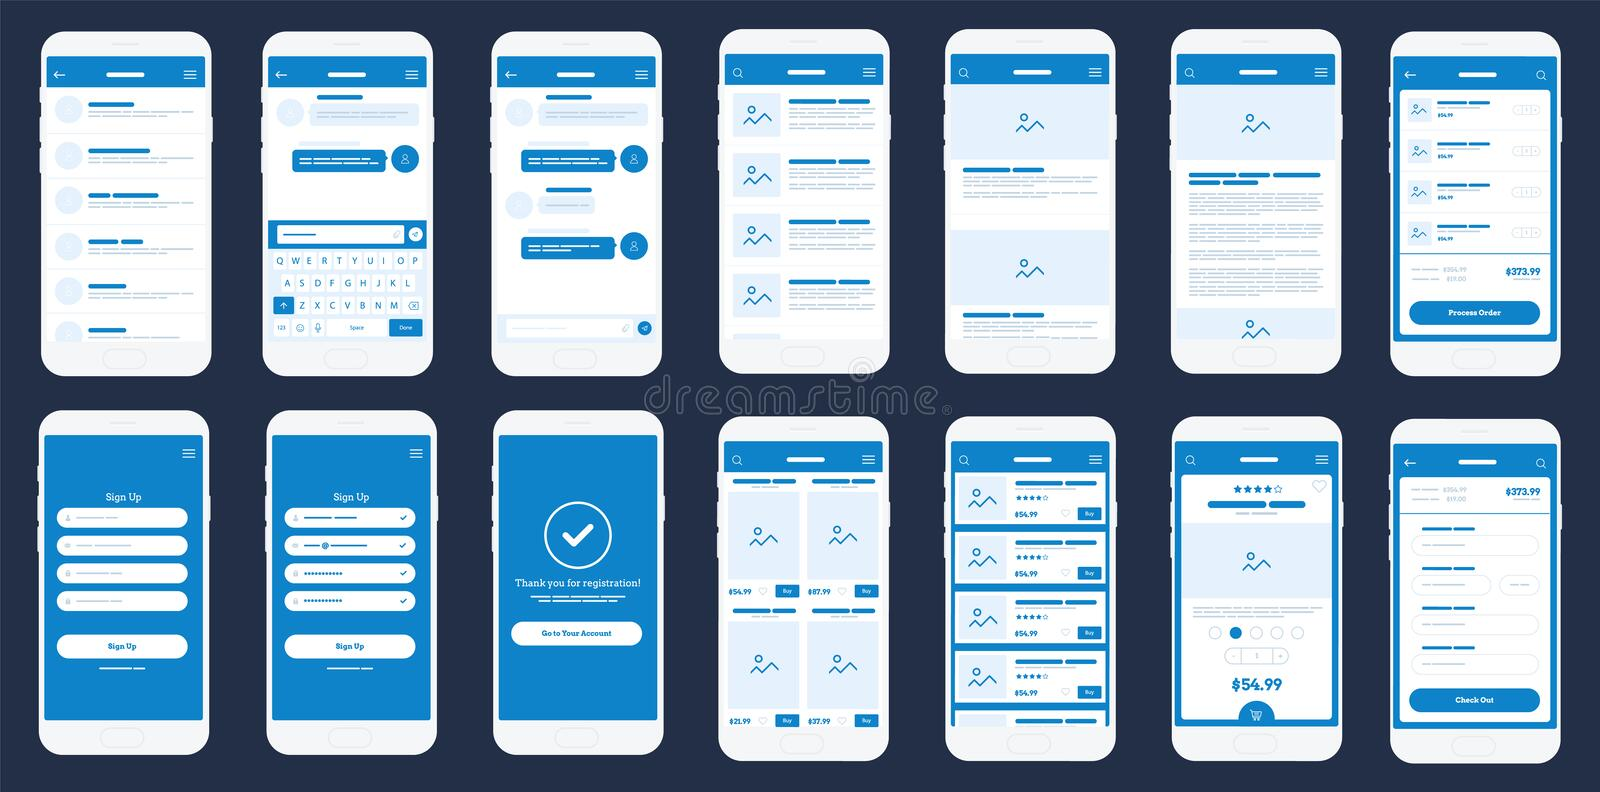 Mobile App Wireframe Ui Kit. Detailed wireframe for quick prototyping. royalty free illustration